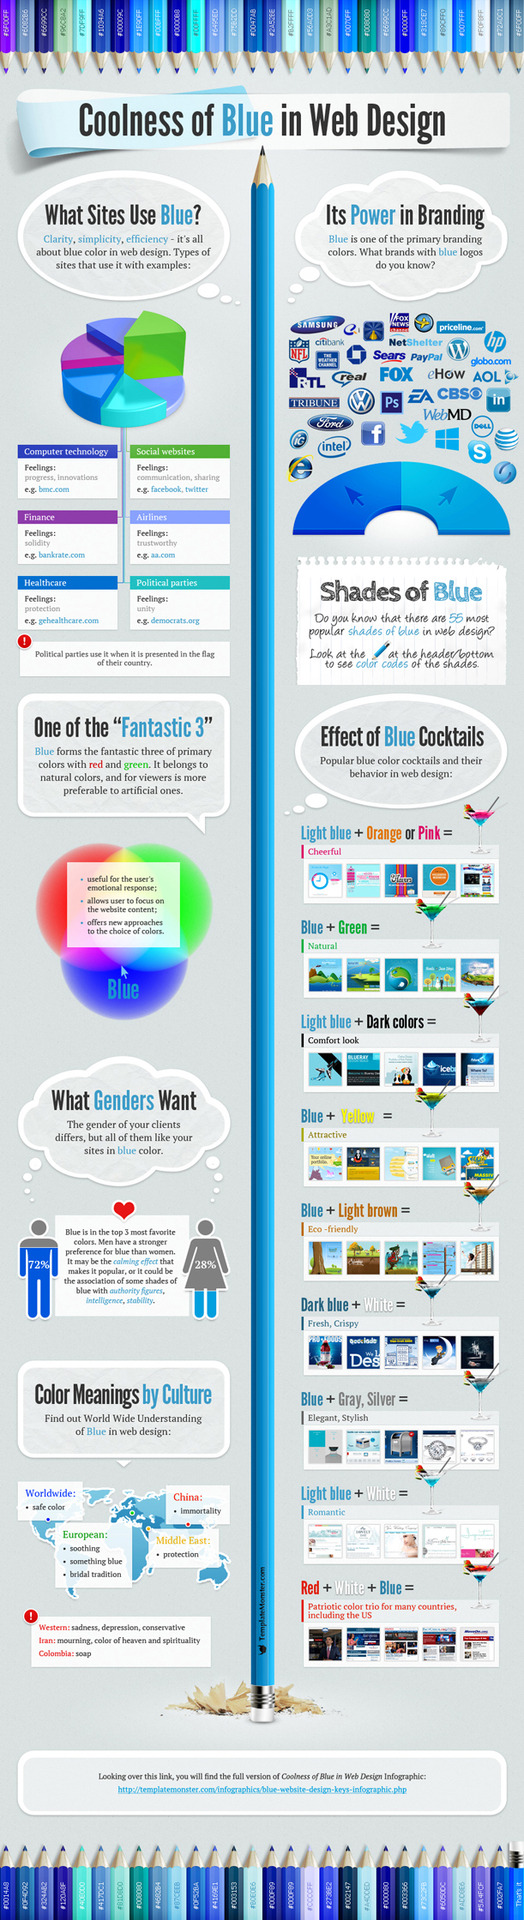 Facebook and Twitter use the color blue, most healthcare companies use the color blue. According to an infographic by TemplateMonster, blue is one of the most popular colors for logos, and it is the dominating the web—but why?  'Coolness of Blue In Web Design' explains that the color gives off positive feelings of progress, innovation, communication, sharing, solidity, trustworthiness, security and unity.   Source